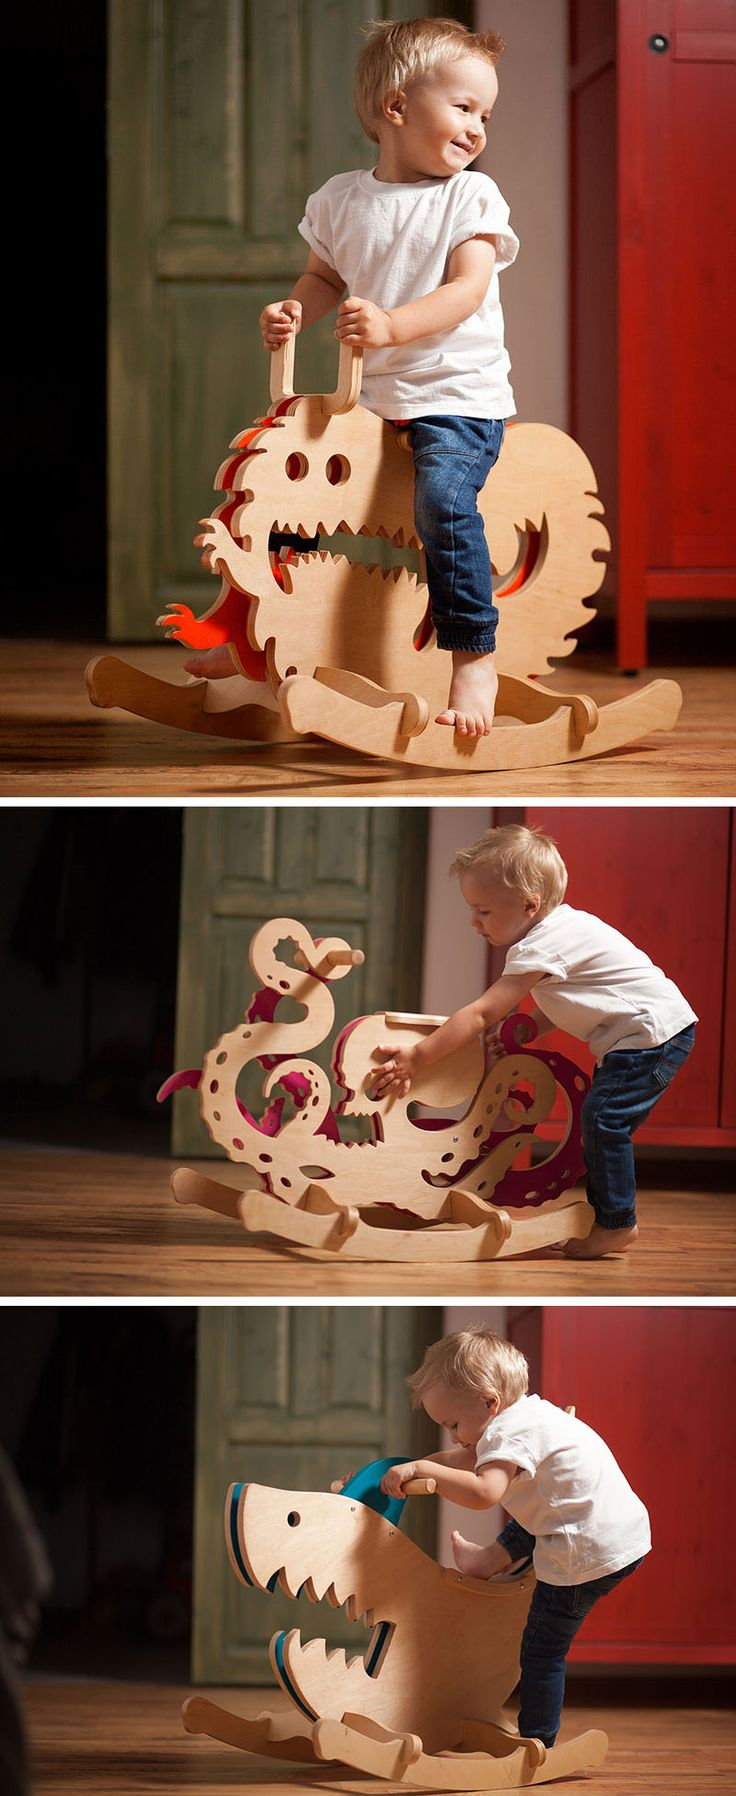 Horse shaped pillows for children - Designer Constantin Bolimond Has Replaced Traditional Rocking Horses With A Line Of Modern Kids Furniture That